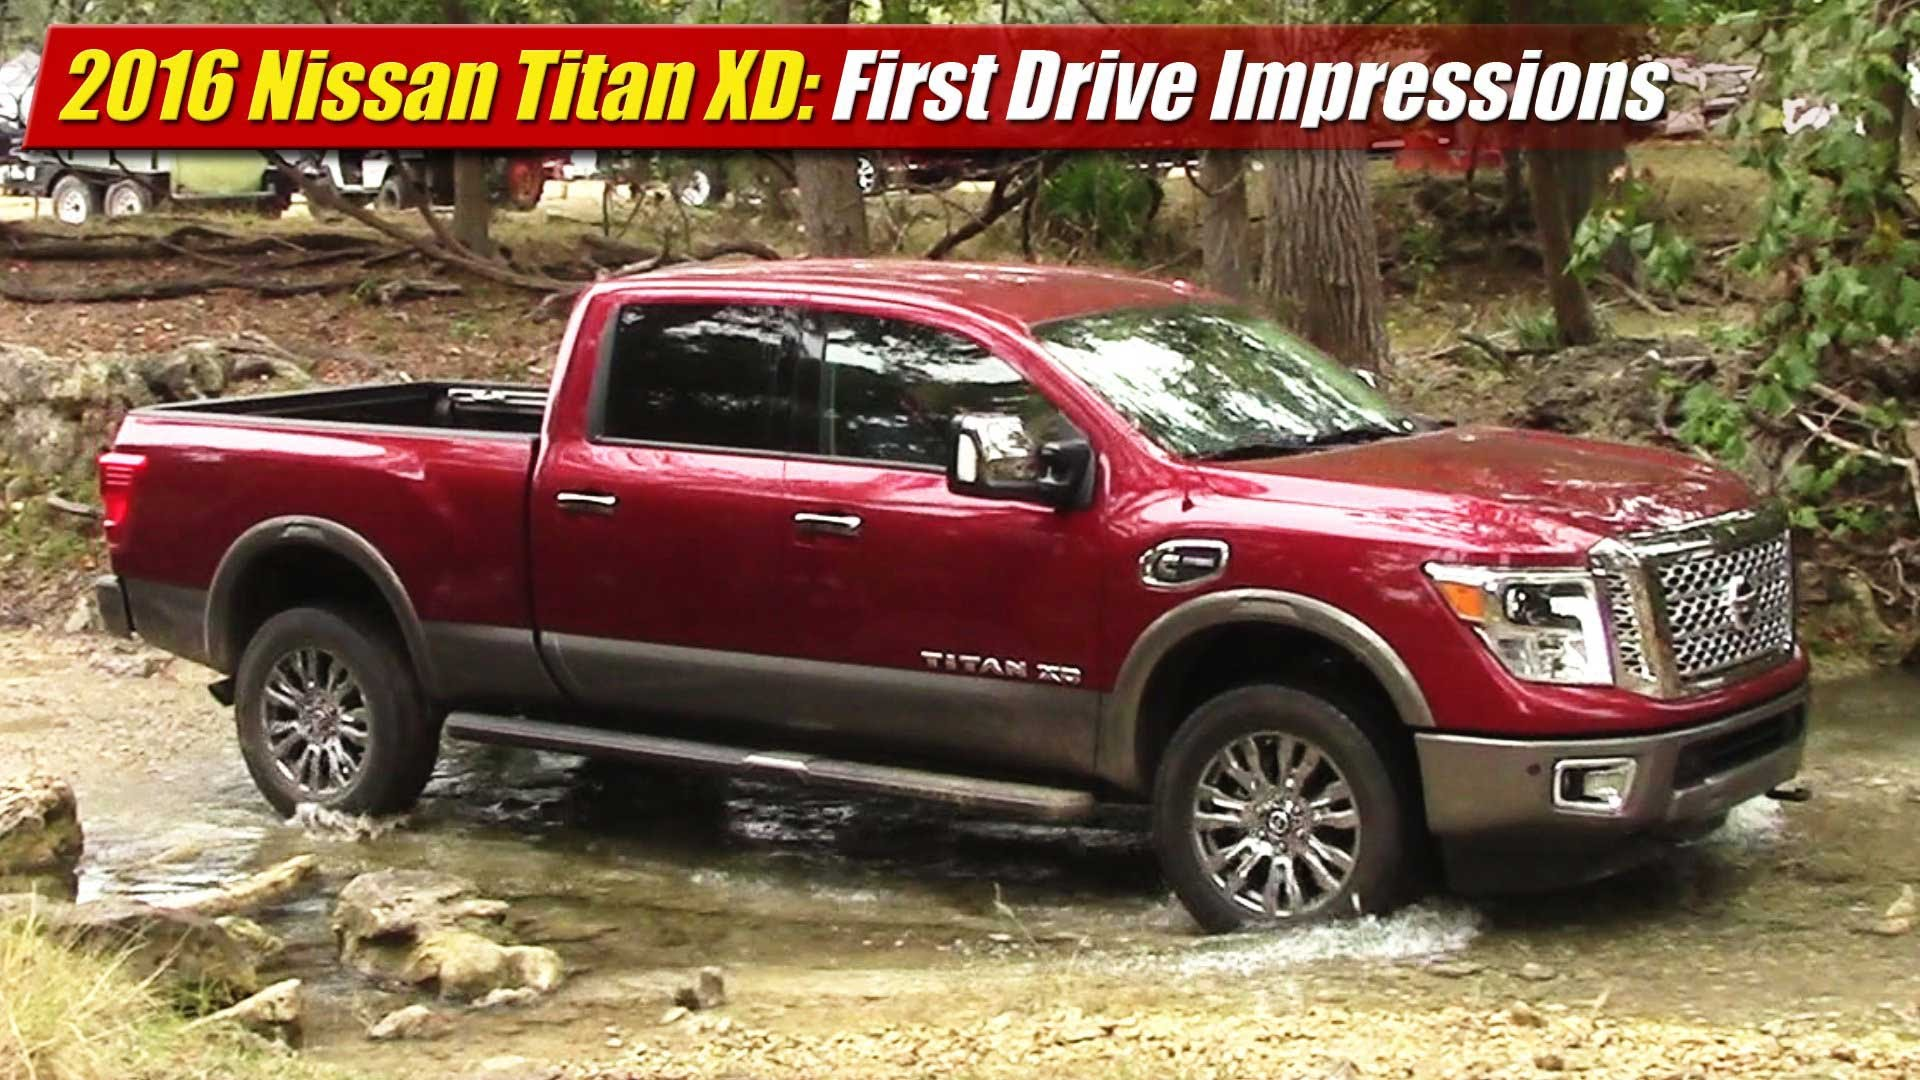 first drive impressions 2016 nissan titan xd cummins. Black Bedroom Furniture Sets. Home Design Ideas